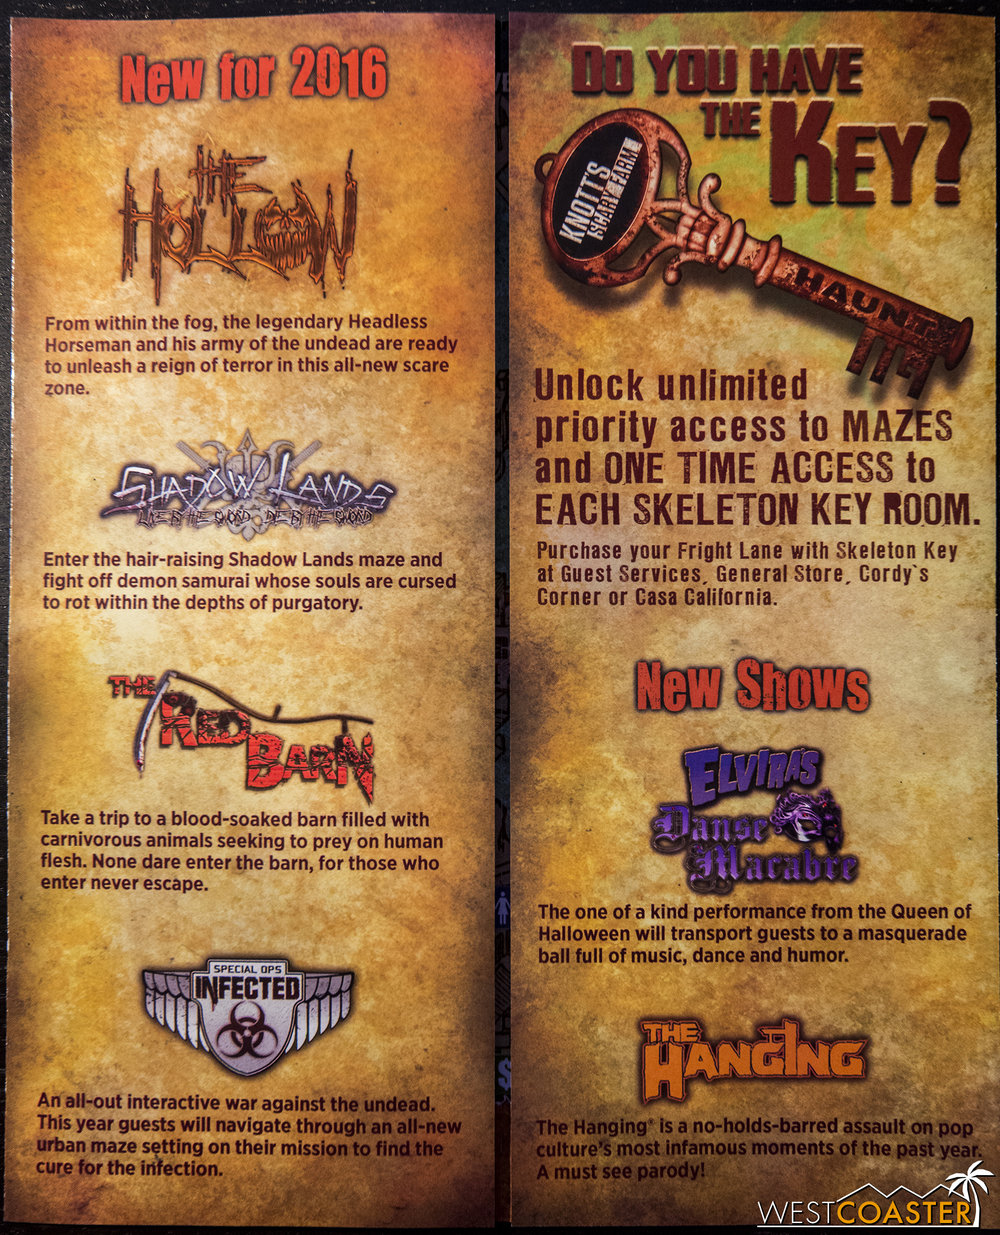 The weekend two Knott's Scary Farm map, with FearVR removed.